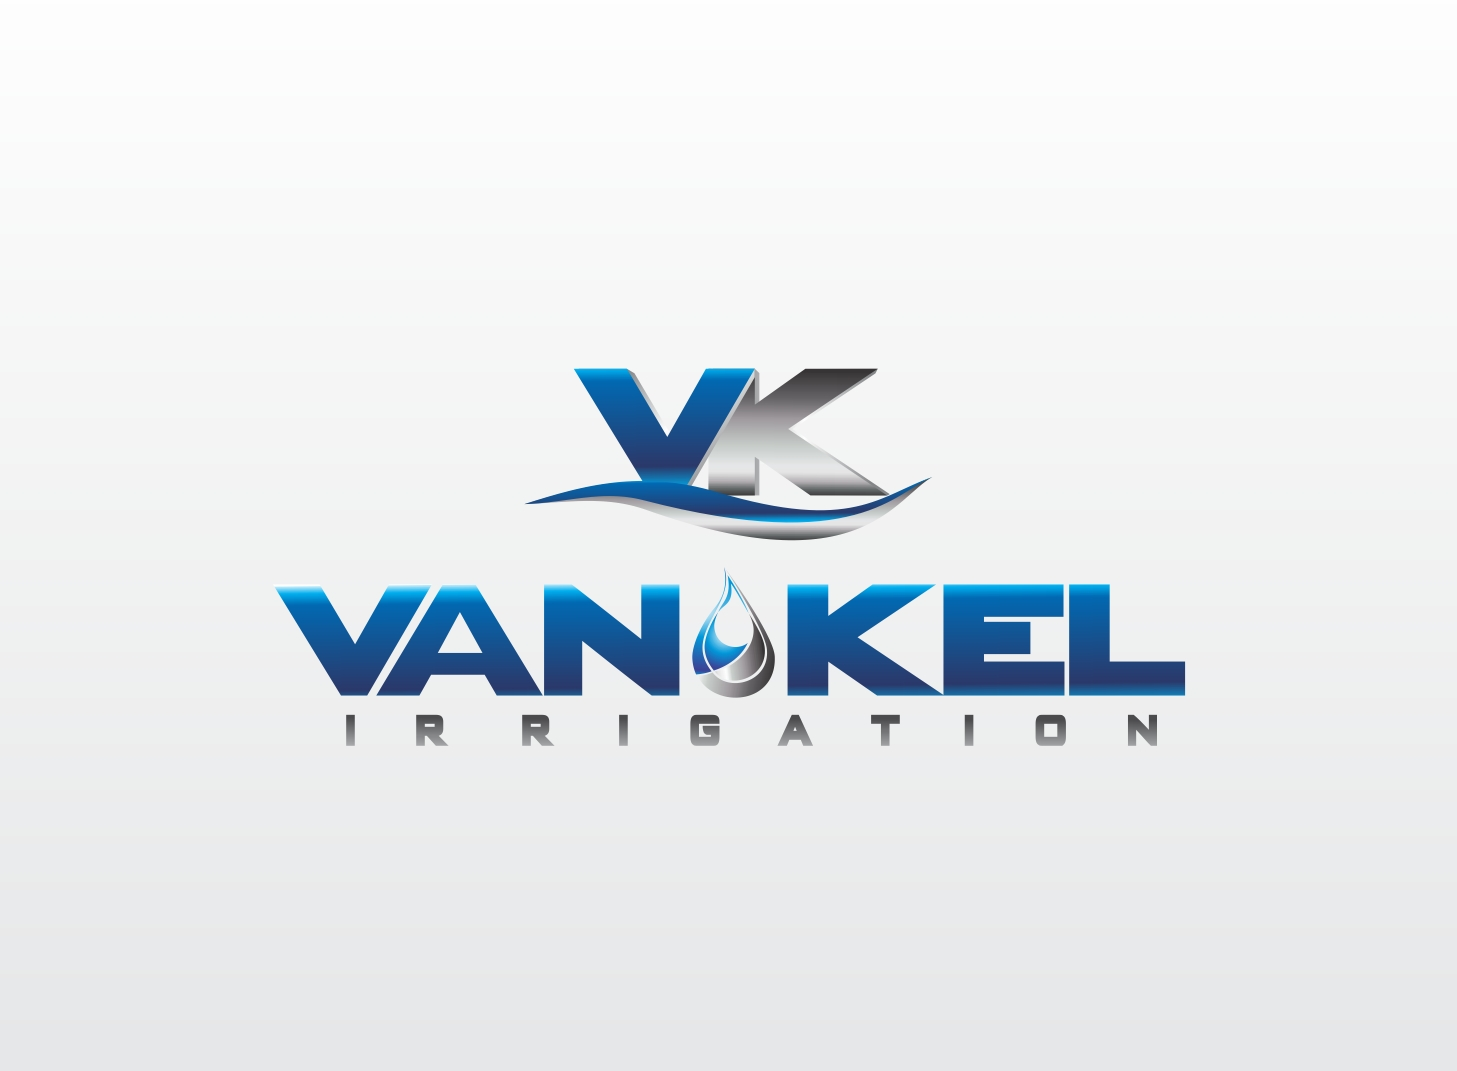 Logo Design by Zdravko Krulj - Entry No. 235 in the Logo Design Contest Van-Kel Irrigation Logo Design.